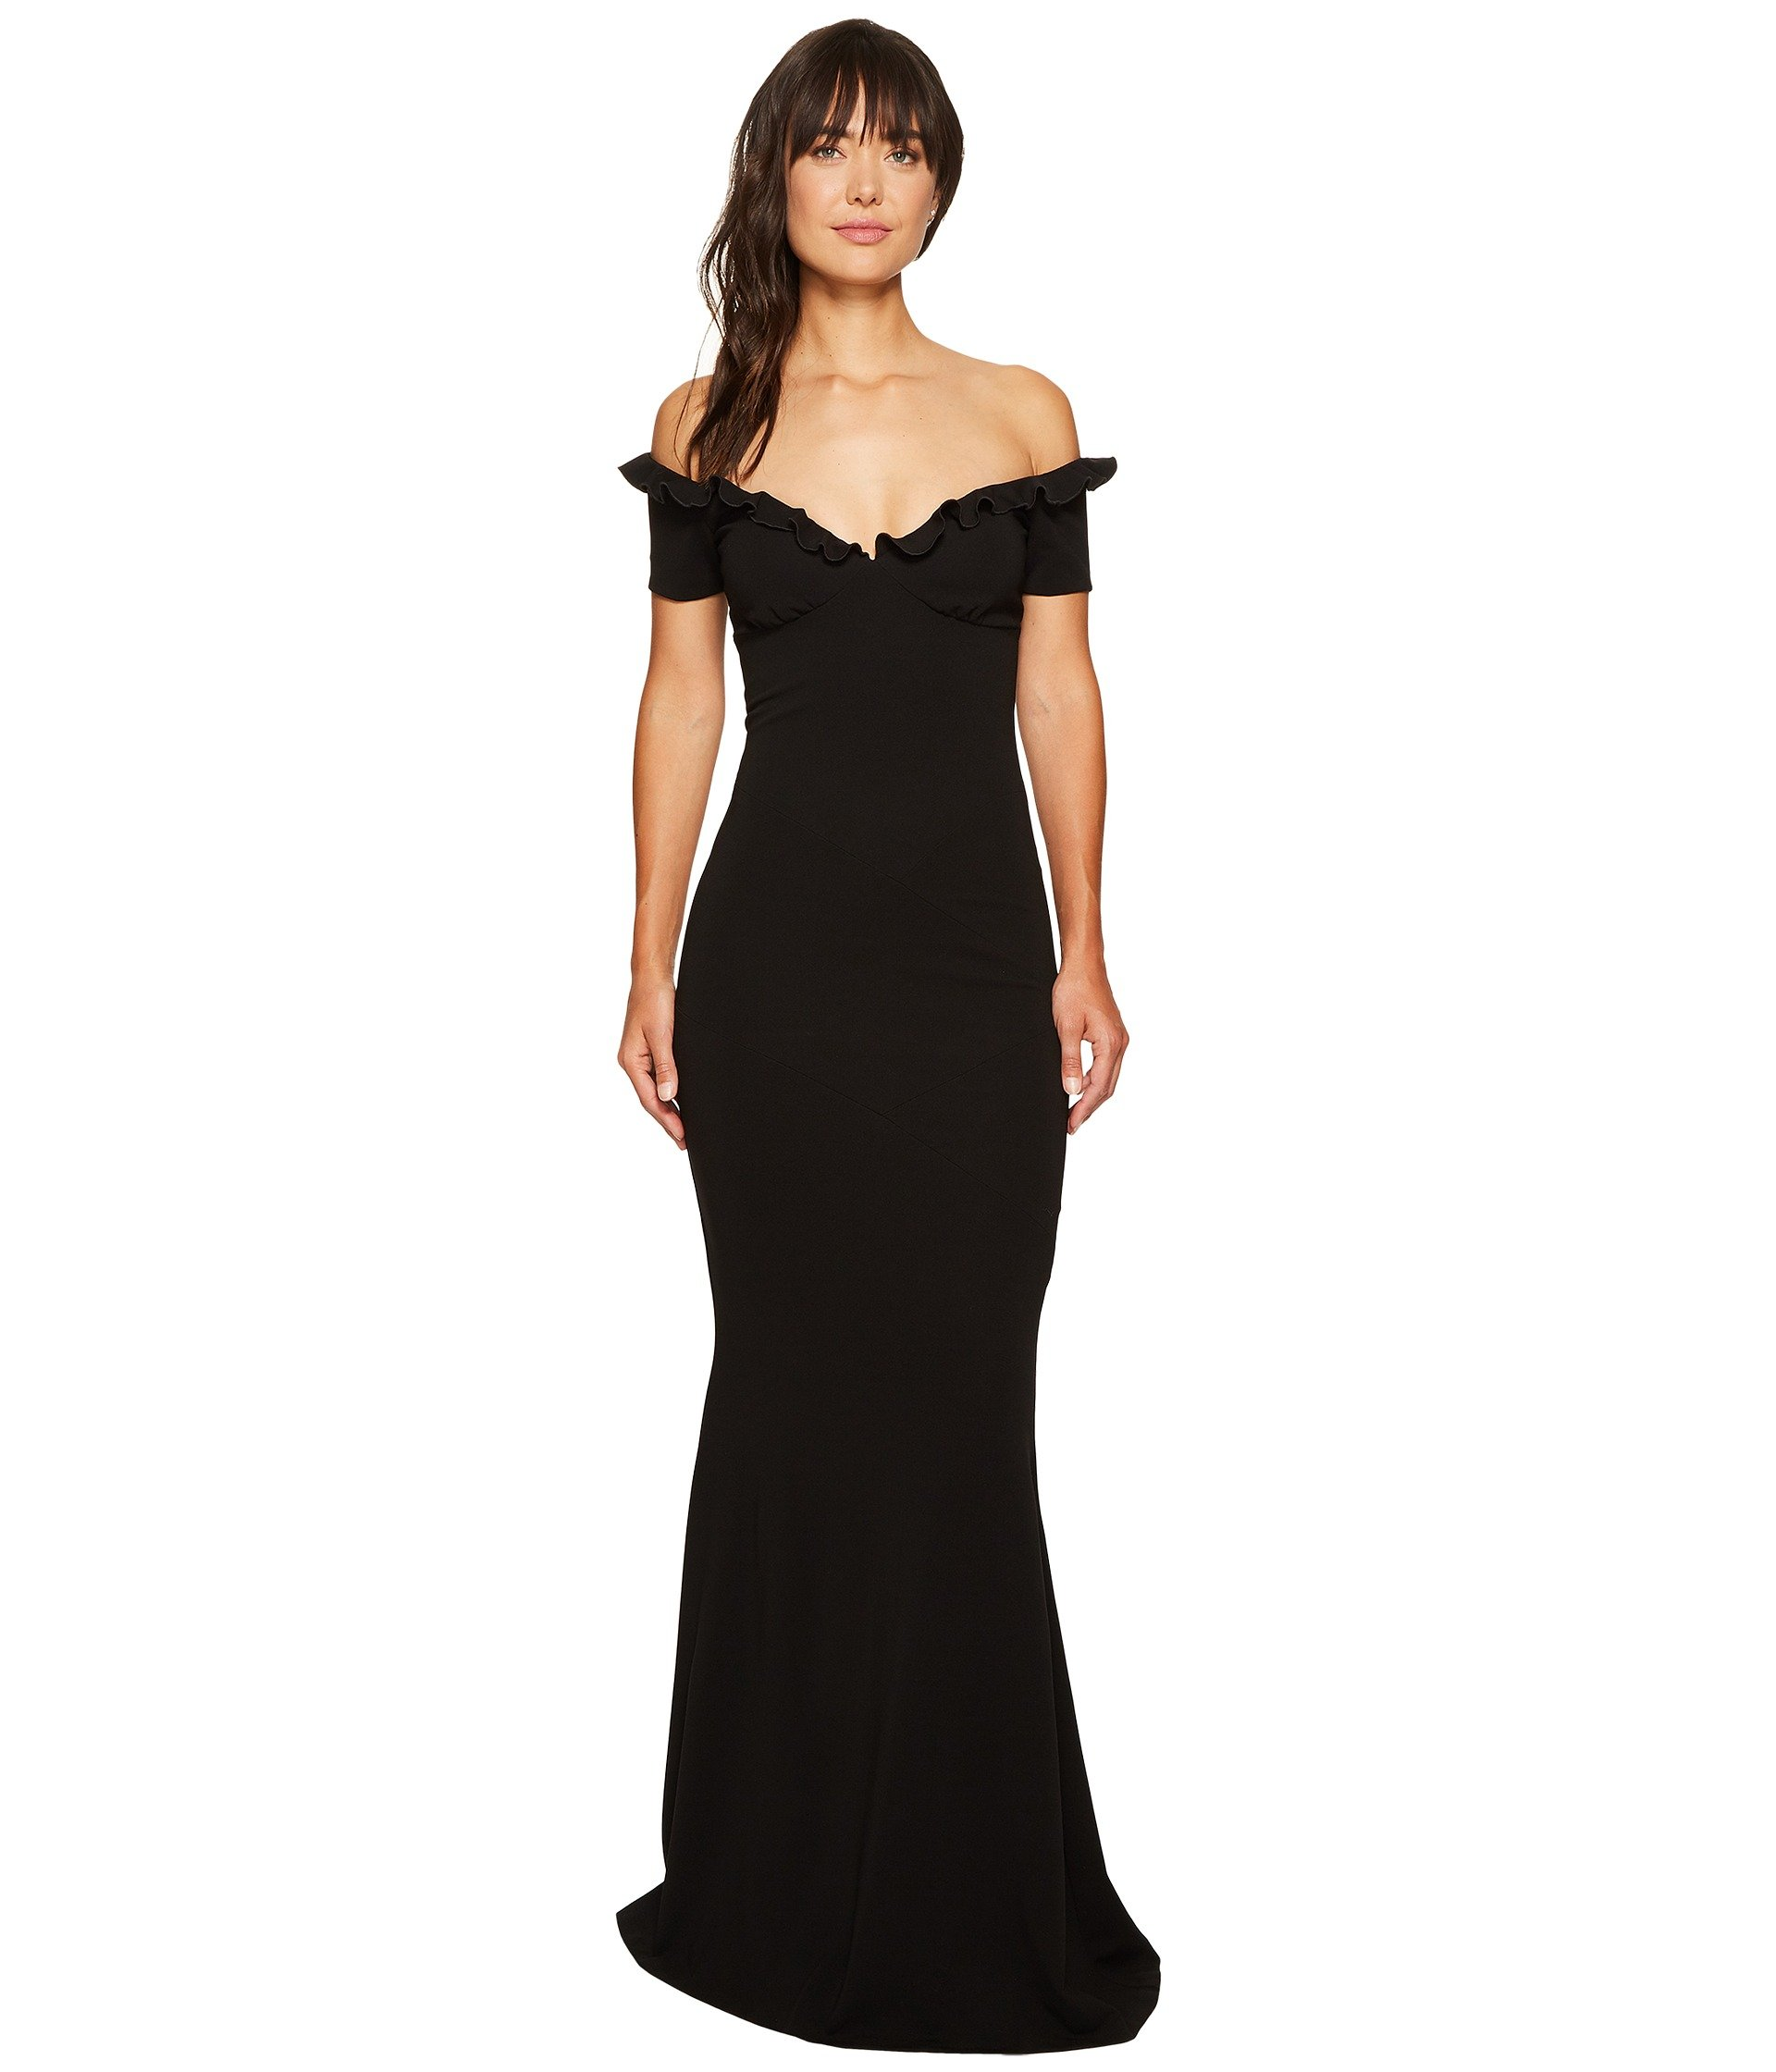 NICOLE MILLER AUDREY OFF SHOULDER RUFFLE GOWN, BLACK | ModeSens